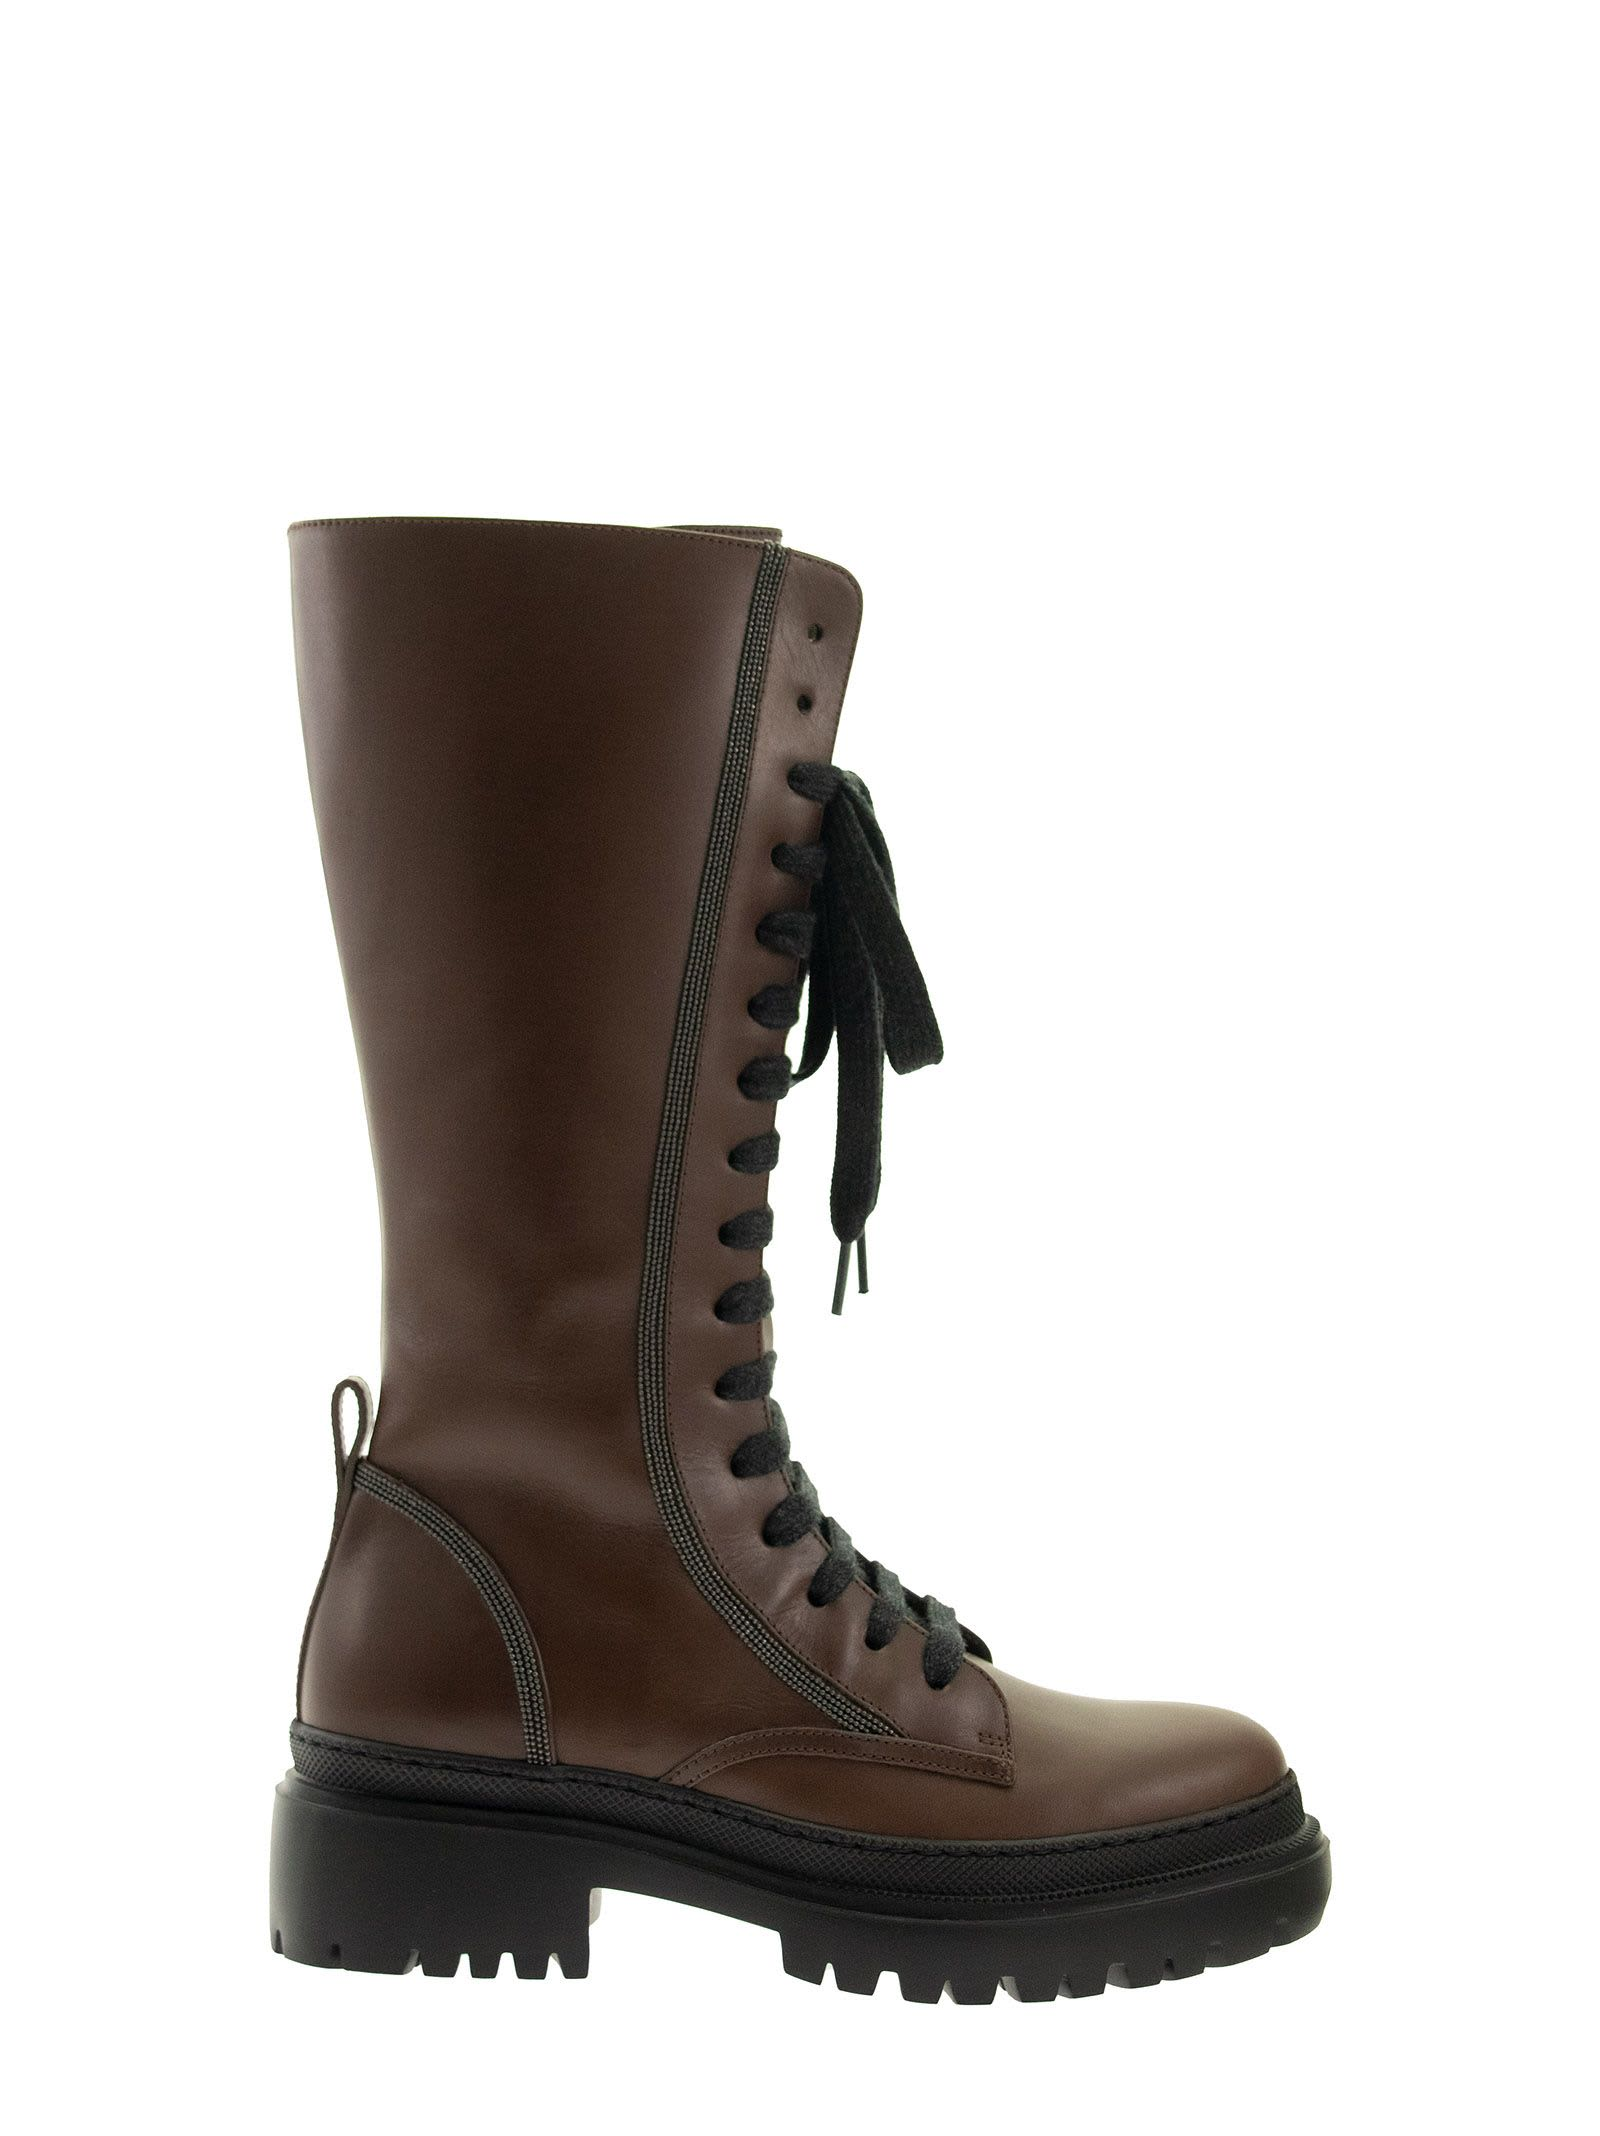 Brunello Cucinelli RIDING CALFSKIN LACE-UP BOOTS WITH PRECIOUS CONTOUR